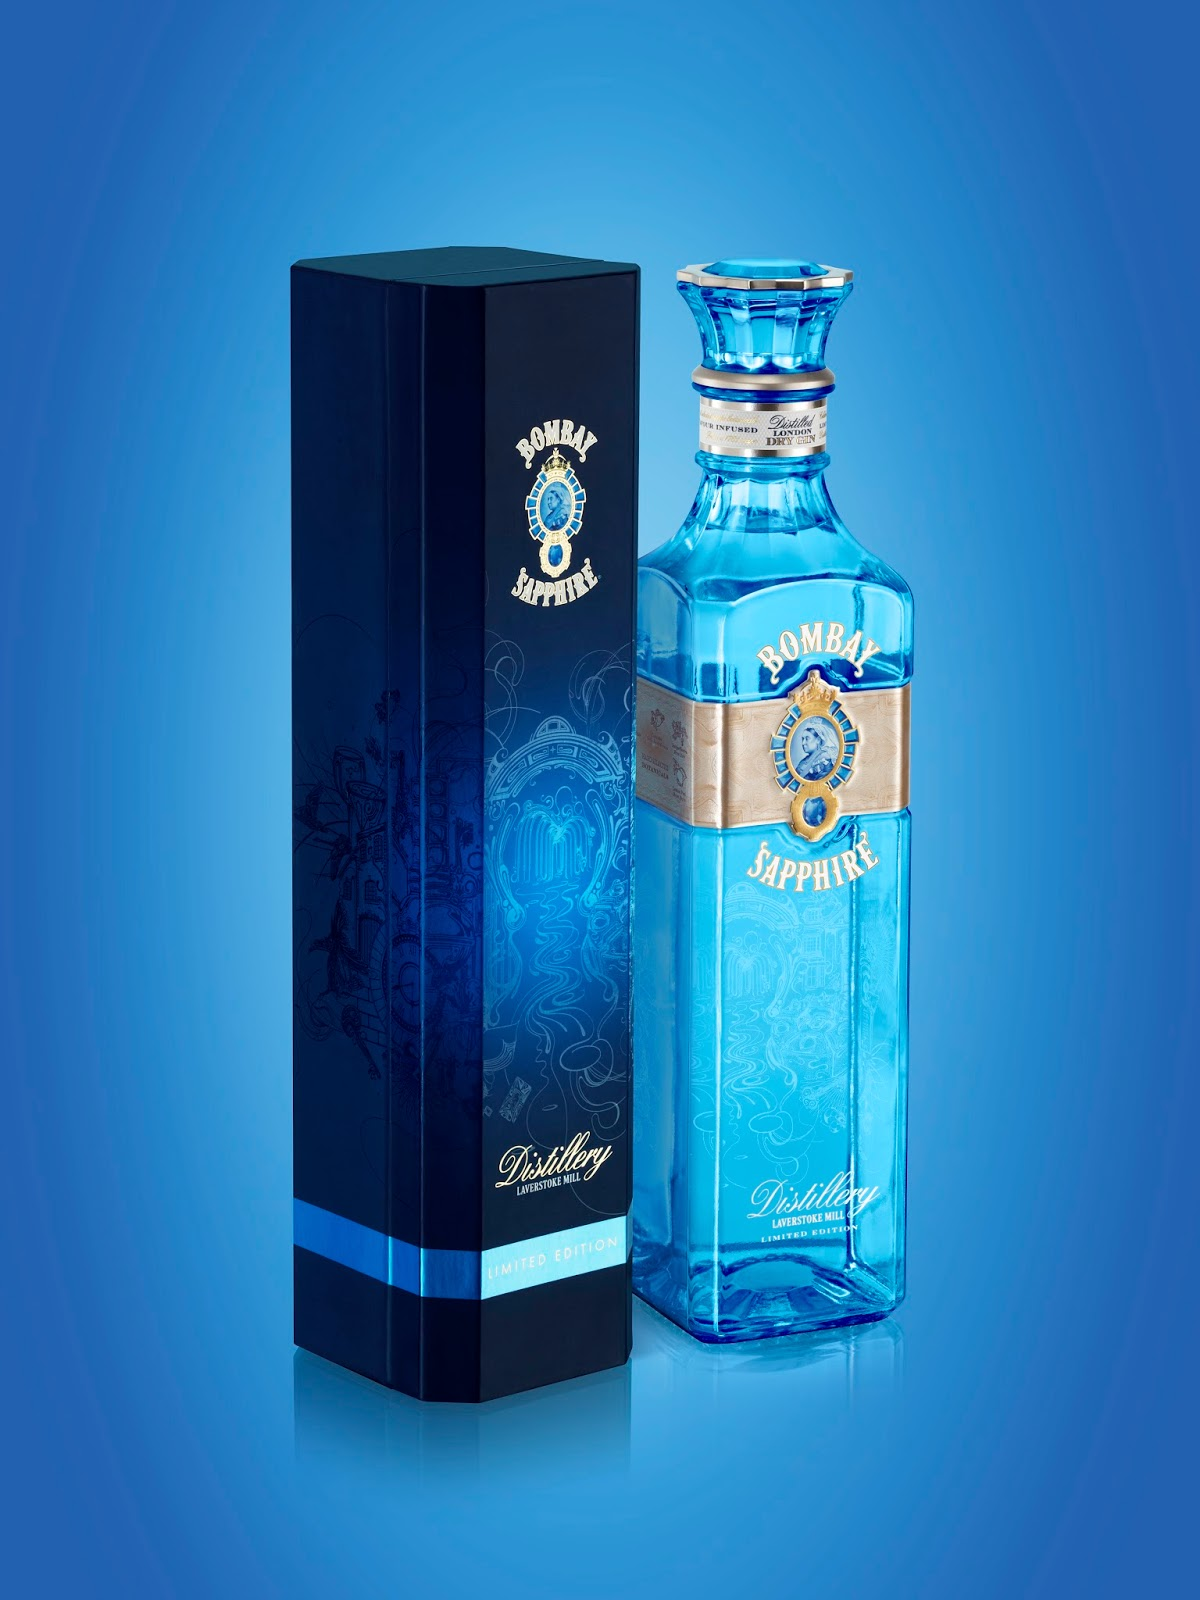 Bombay Sapphire Laverstoke Mill Distillery Limited Edition by Webb deVlam